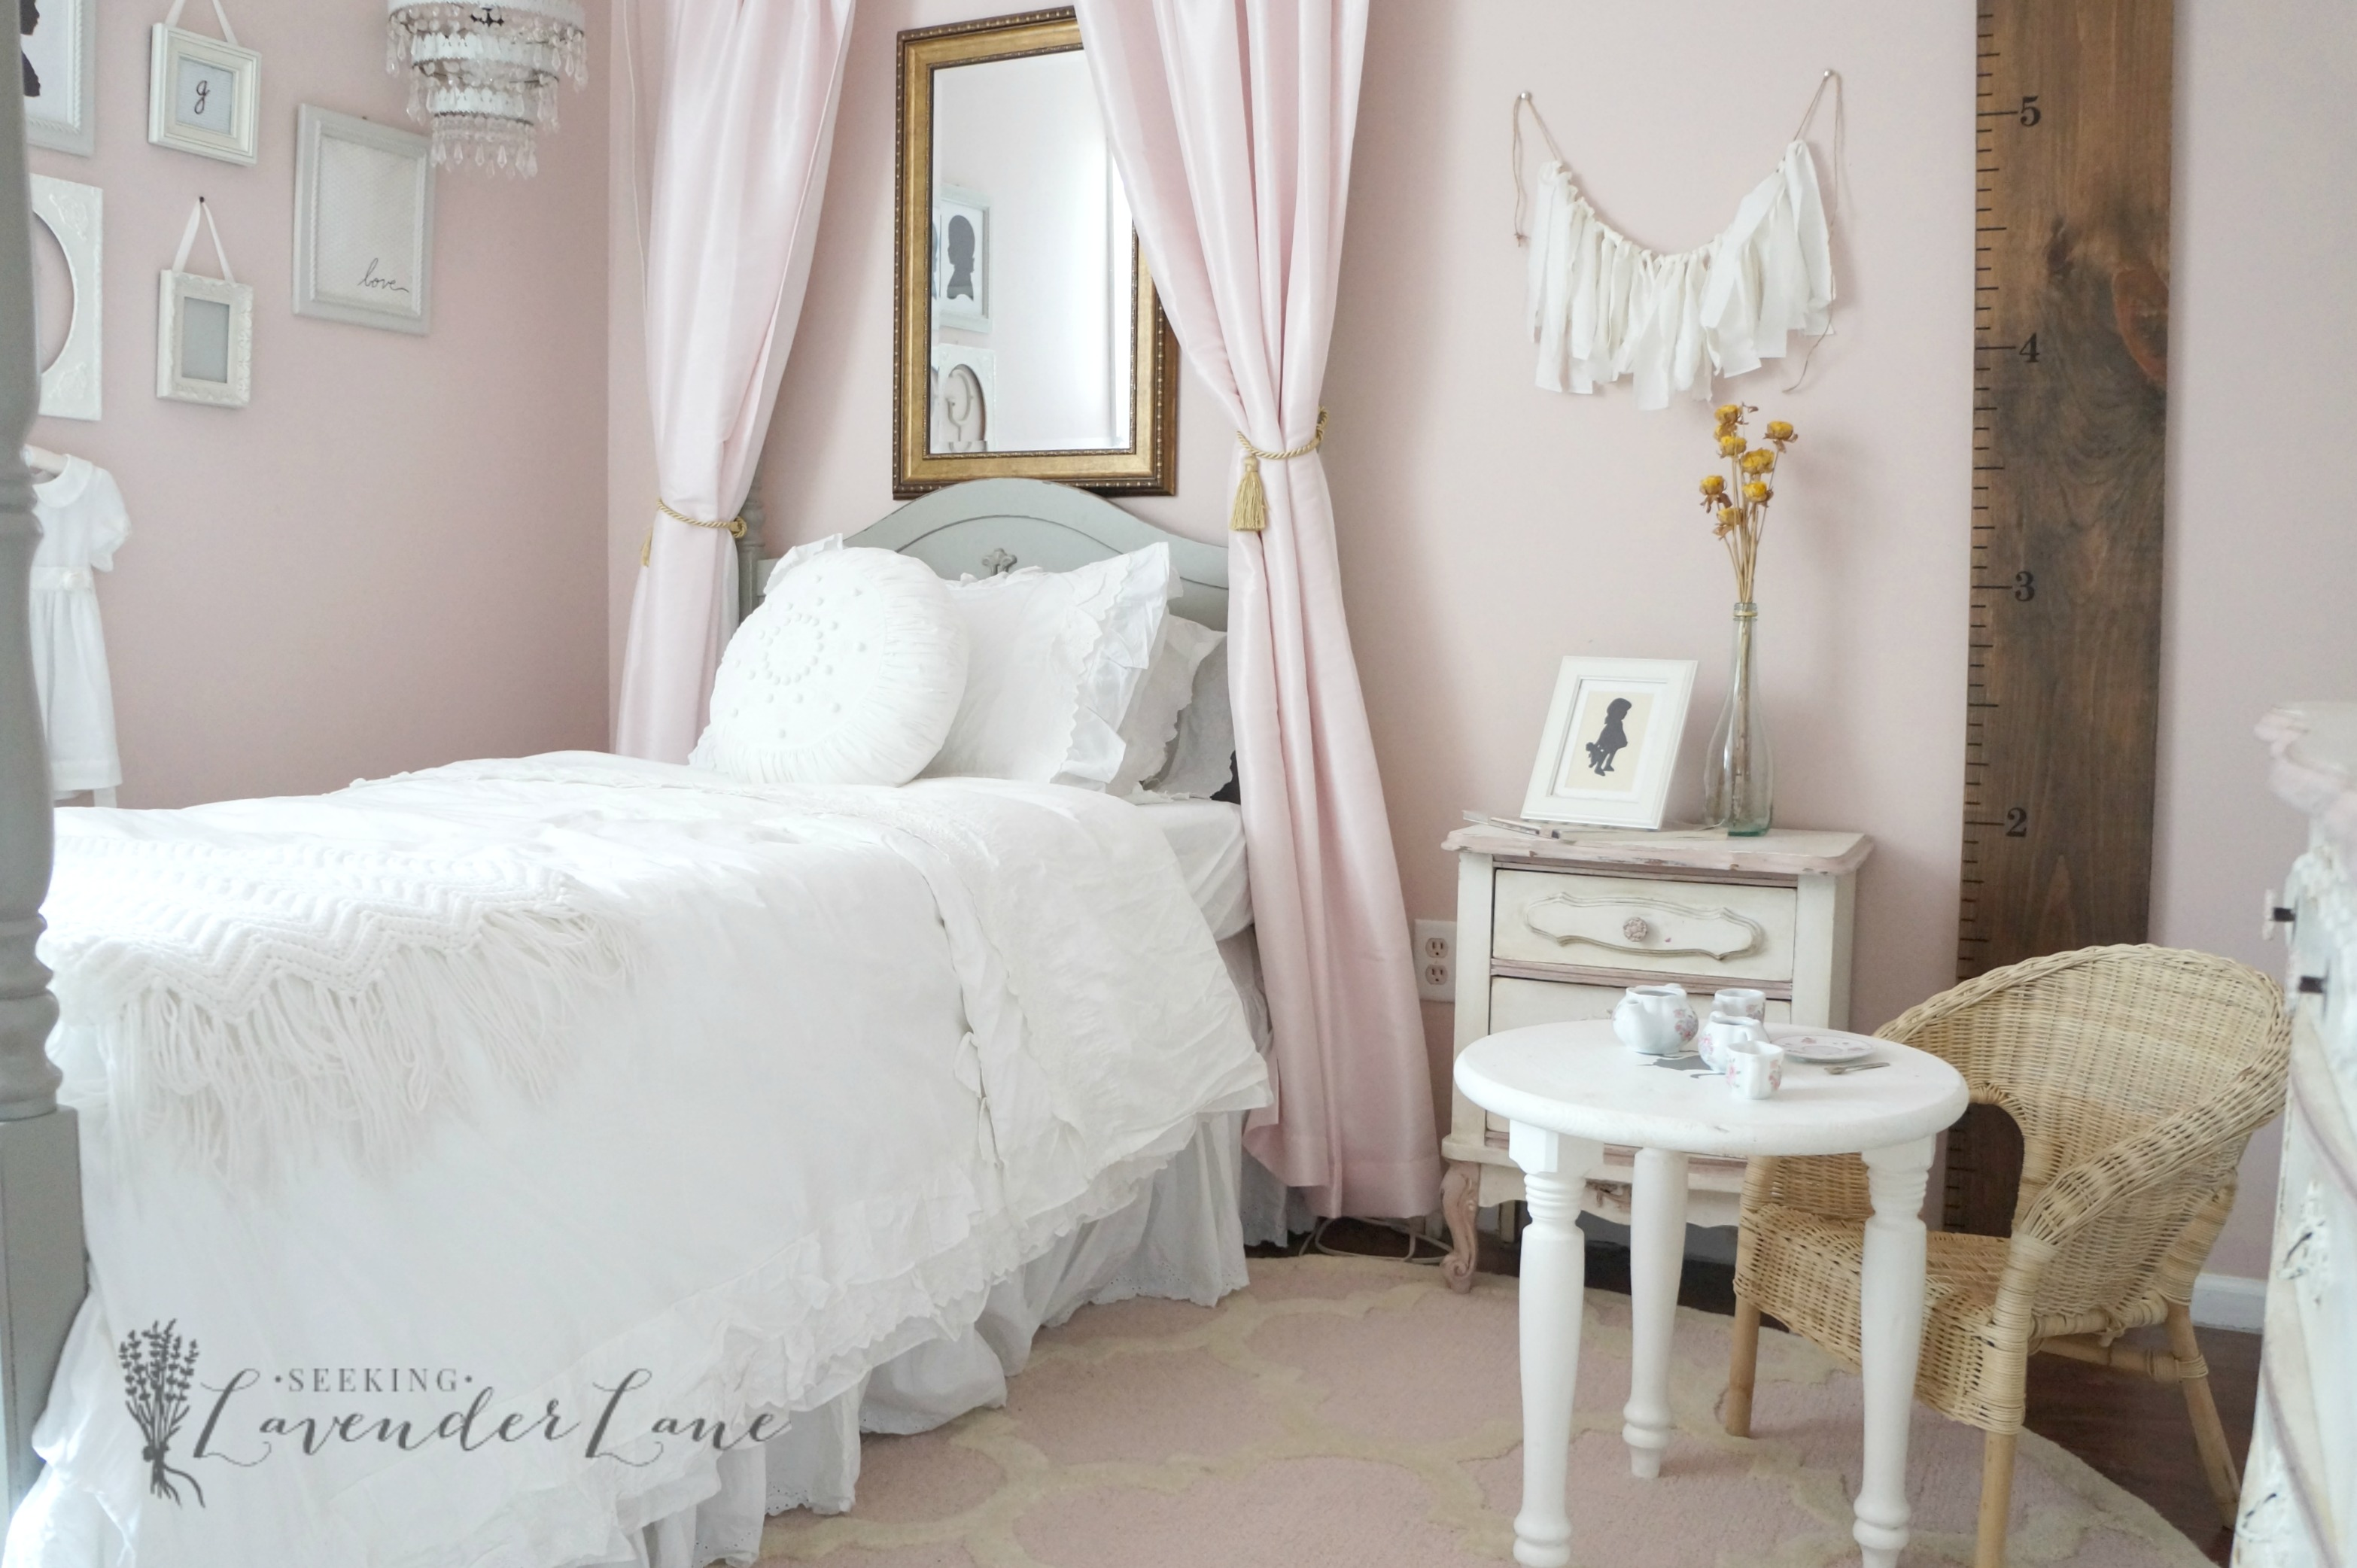 Pink vintage girl 39 s bedroom seeking lavendar lane - Images of girls bedroom ...